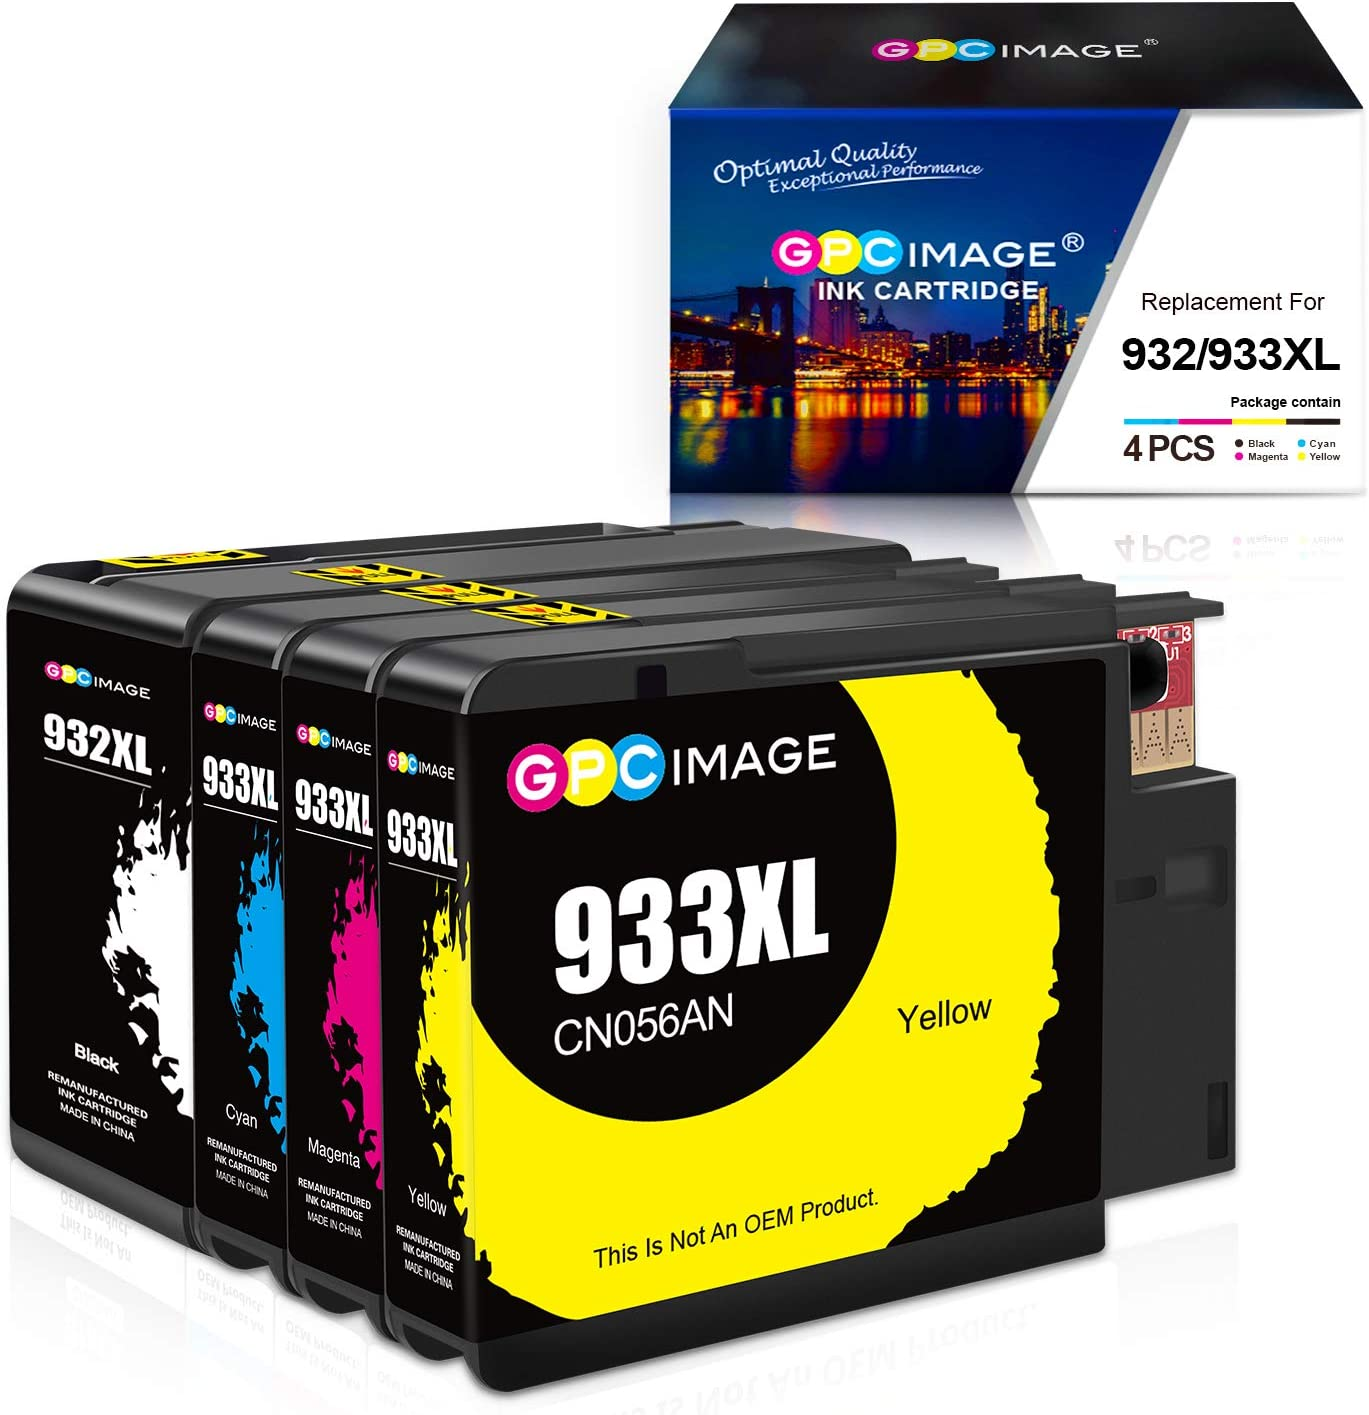 GPC Image Remanufactured Ink Cartridge Replacement for HP 932XL 933XL 932 933 to use with Officejet 7110 6600 6700 6100 7612 7610 Printer (Black,Cyan,Magenta,Yellow)